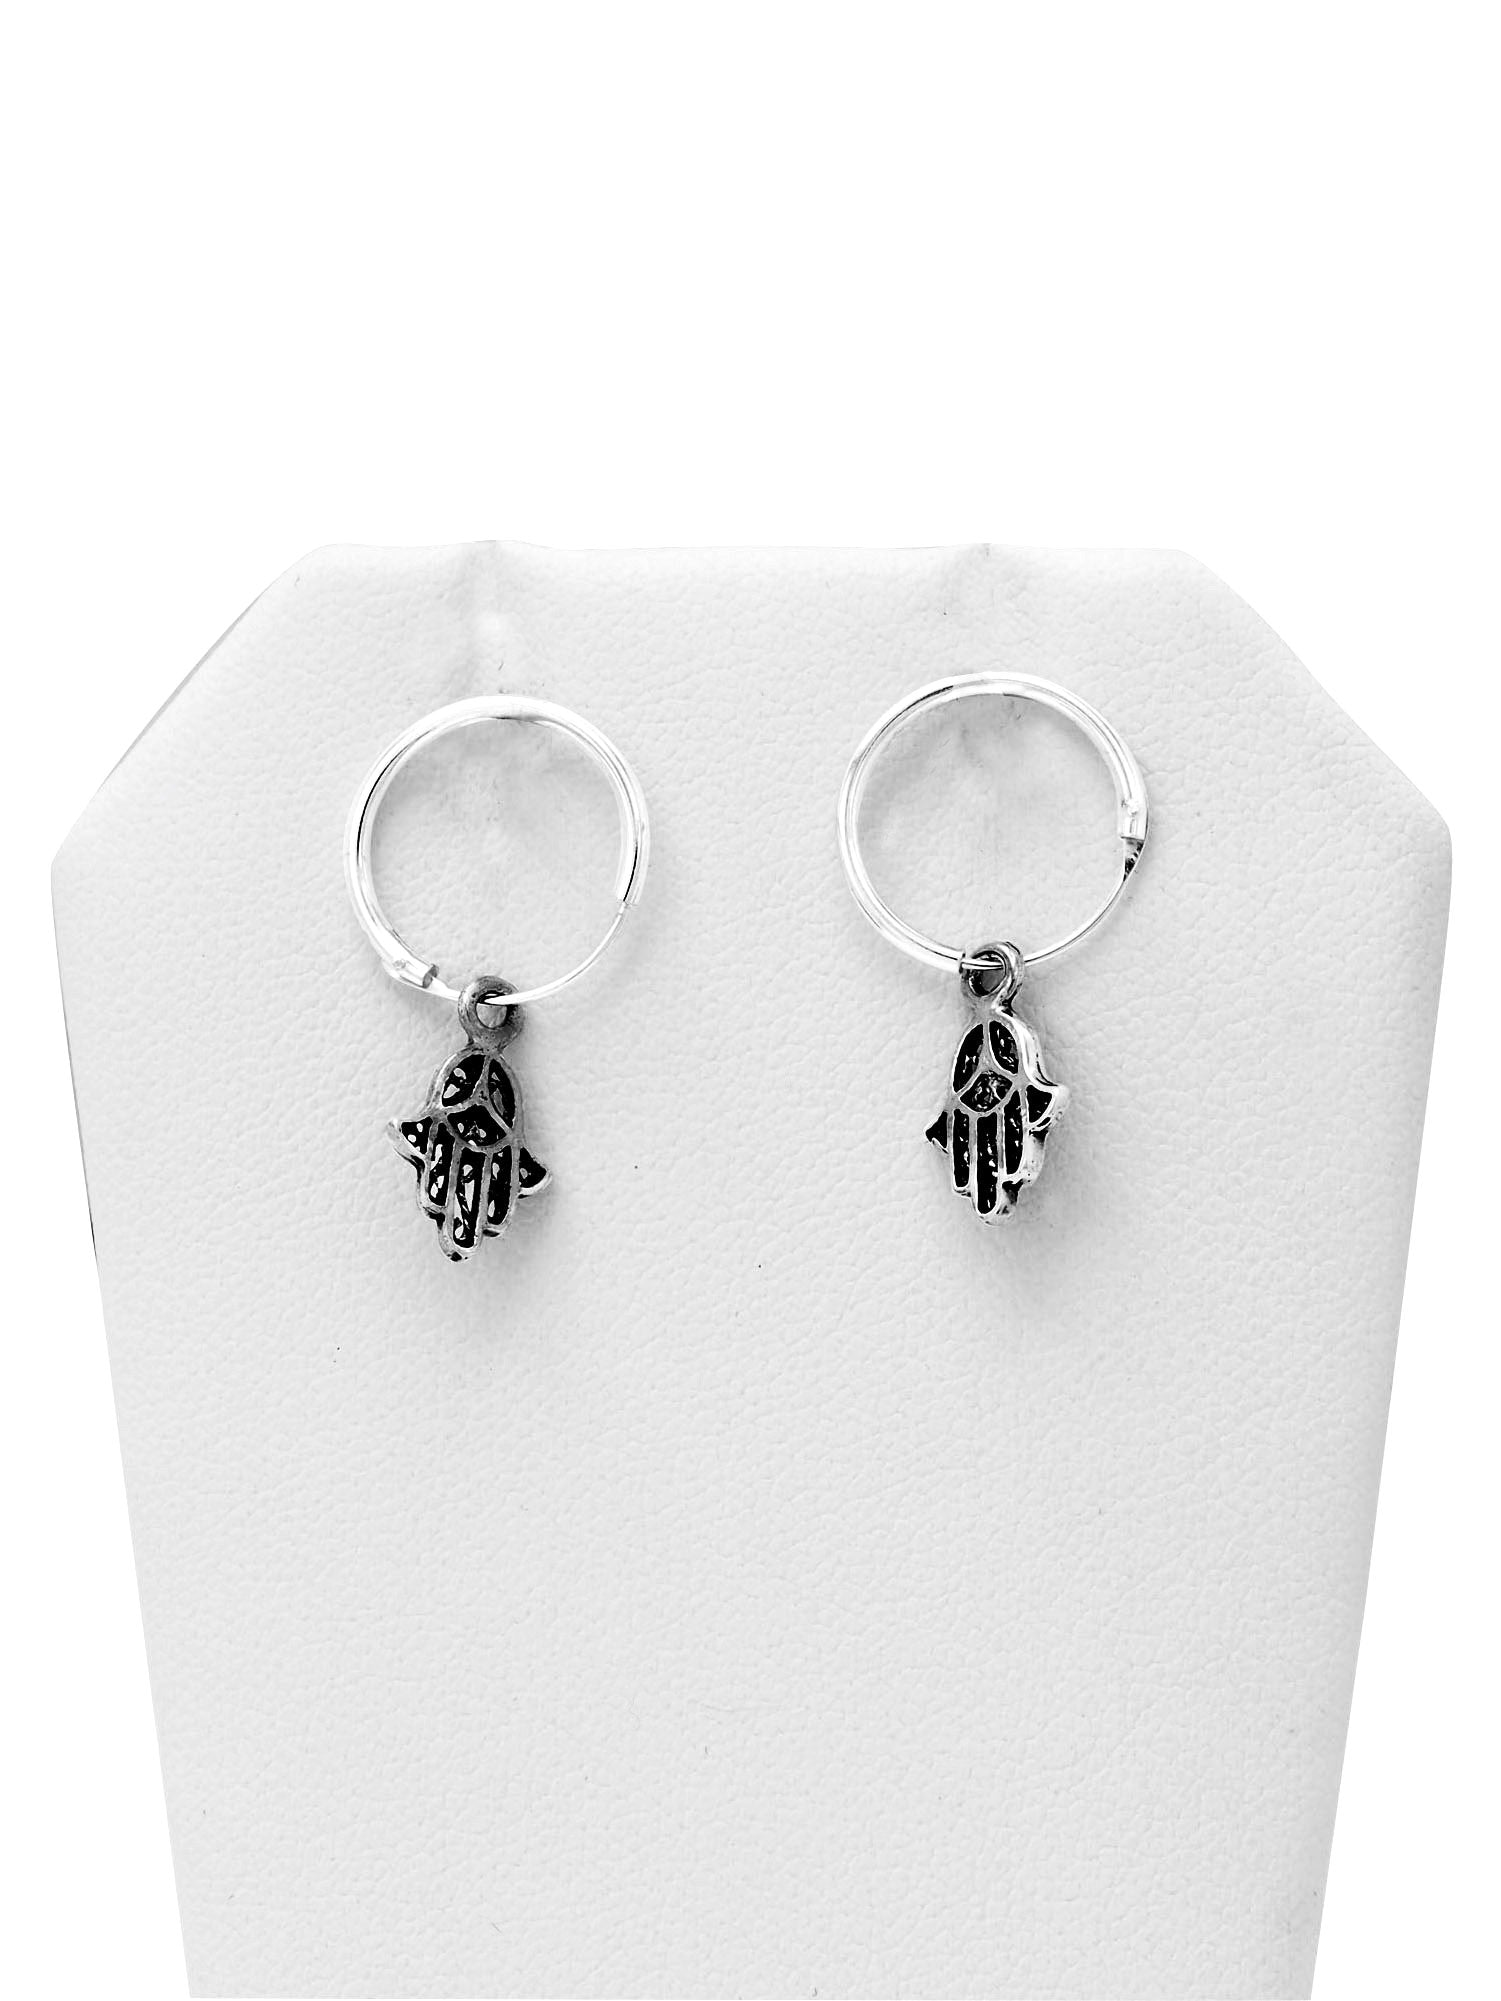 Casey Hamsa Hand, Hand of Fatima Hoop Earrings, 925 Sterling Silver - Quan Jewelry